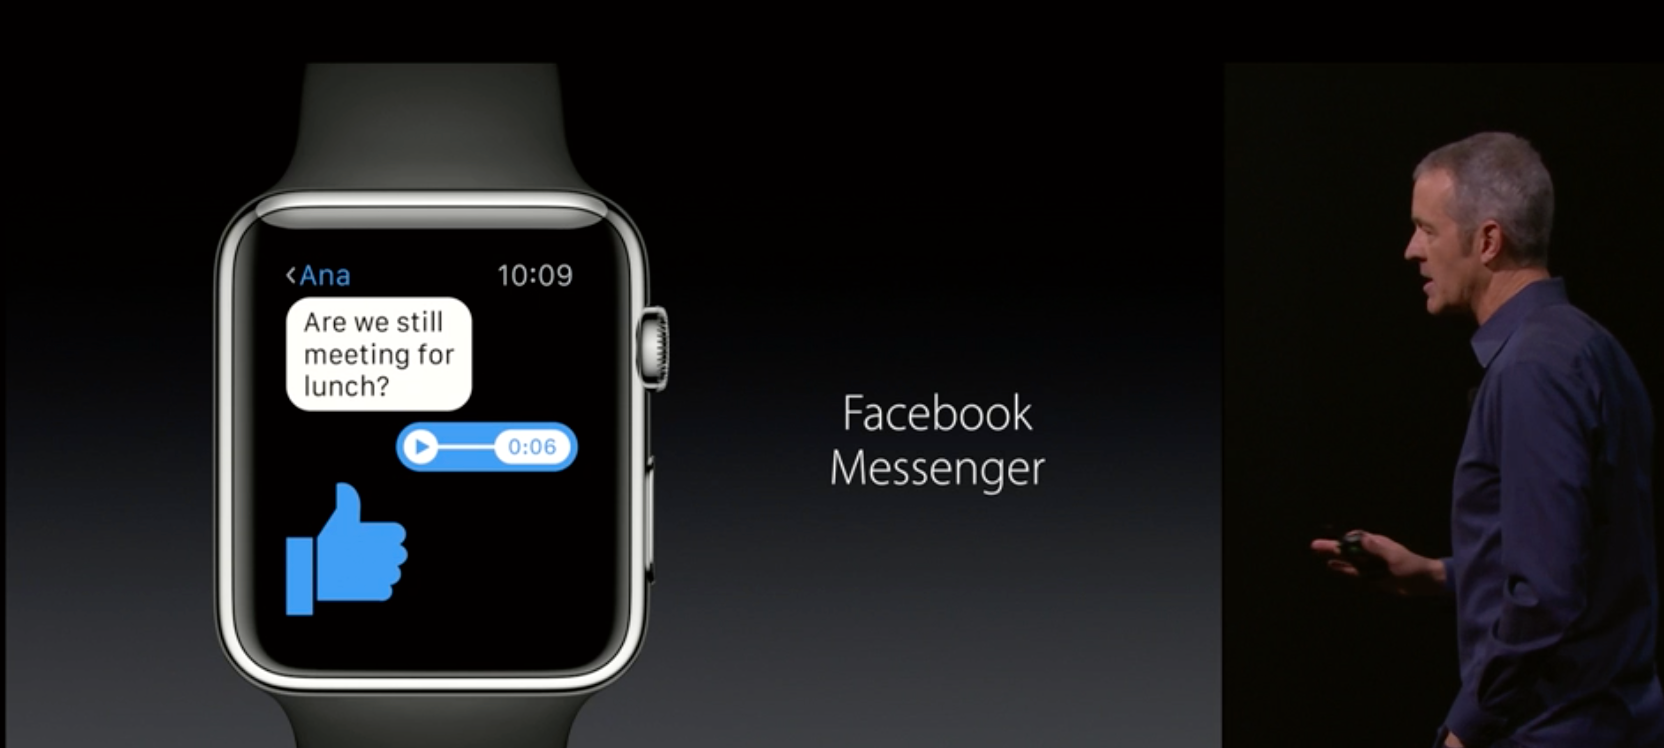 Facebook Messenger kommer til Apple Watch.